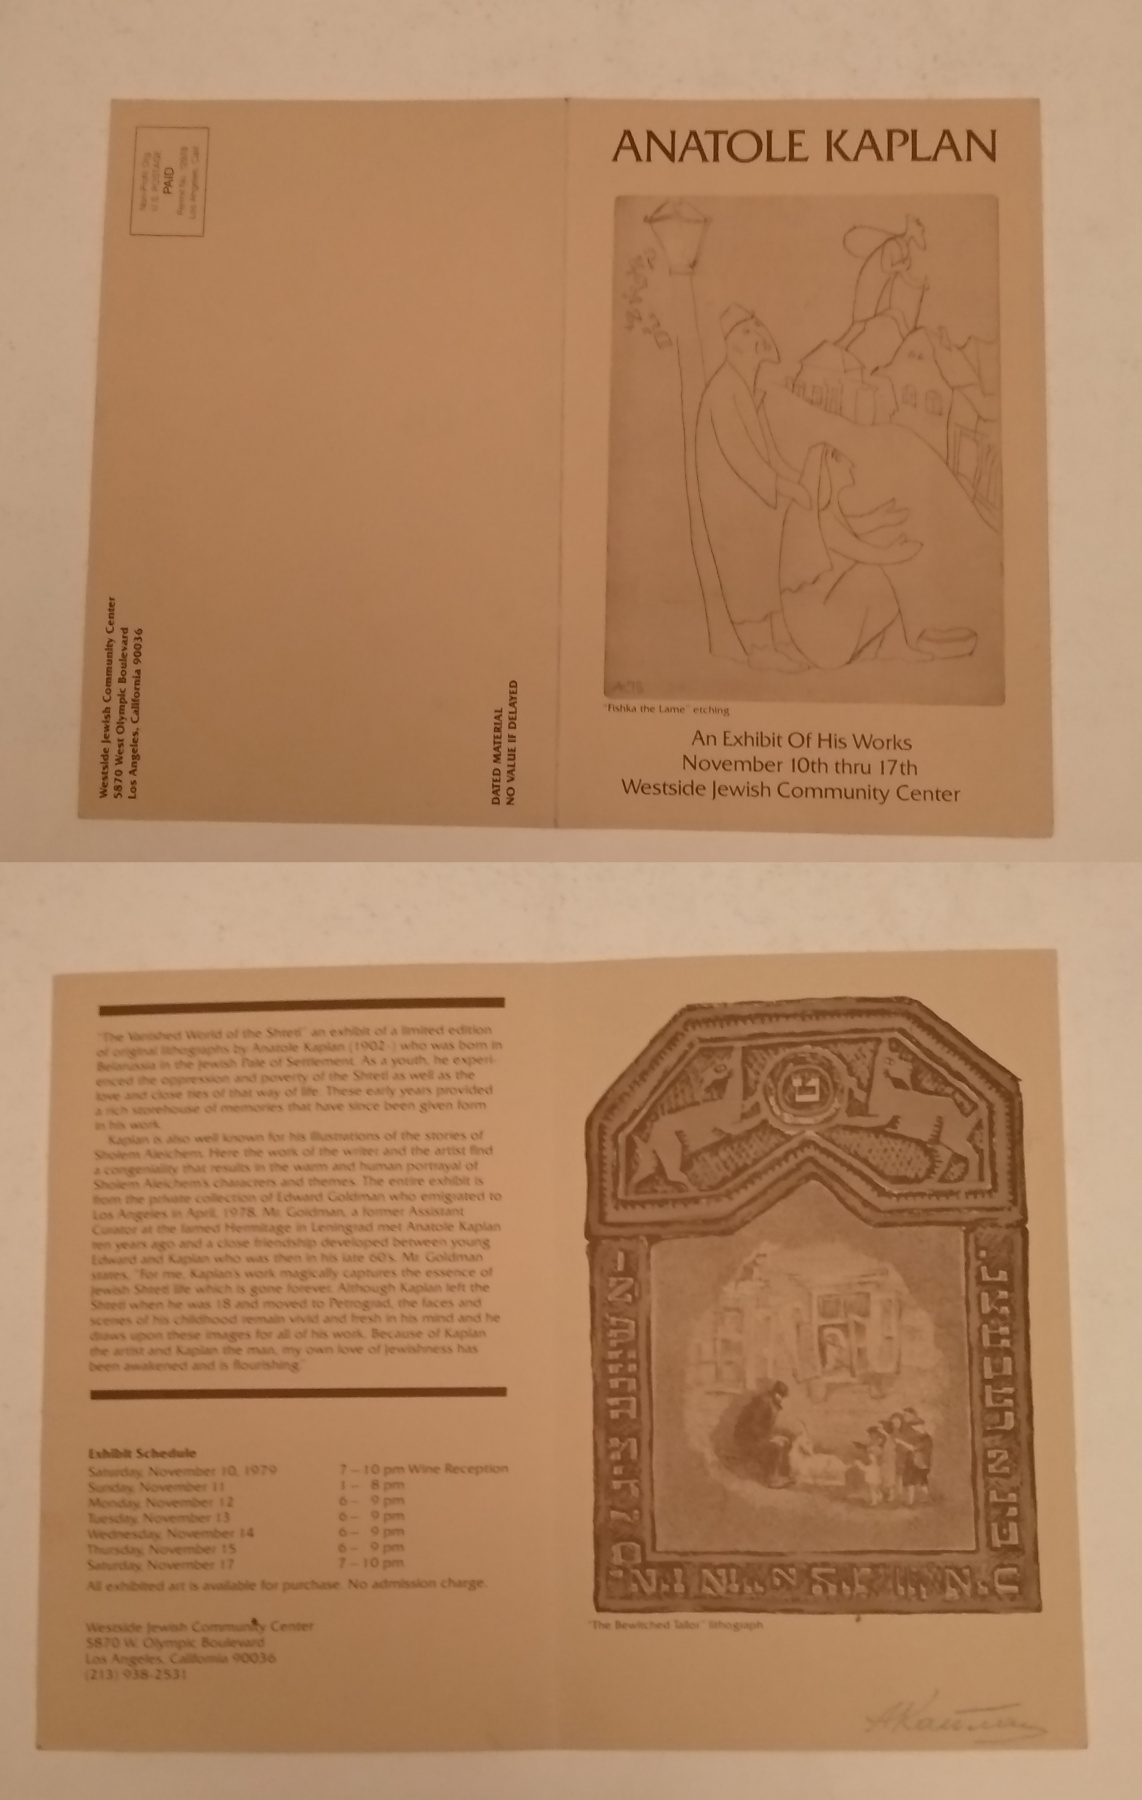 Anatoly Kaplan L.. Leflet for the exhibition (11-1979 Los Angeles) signed by A.L. Kaplan